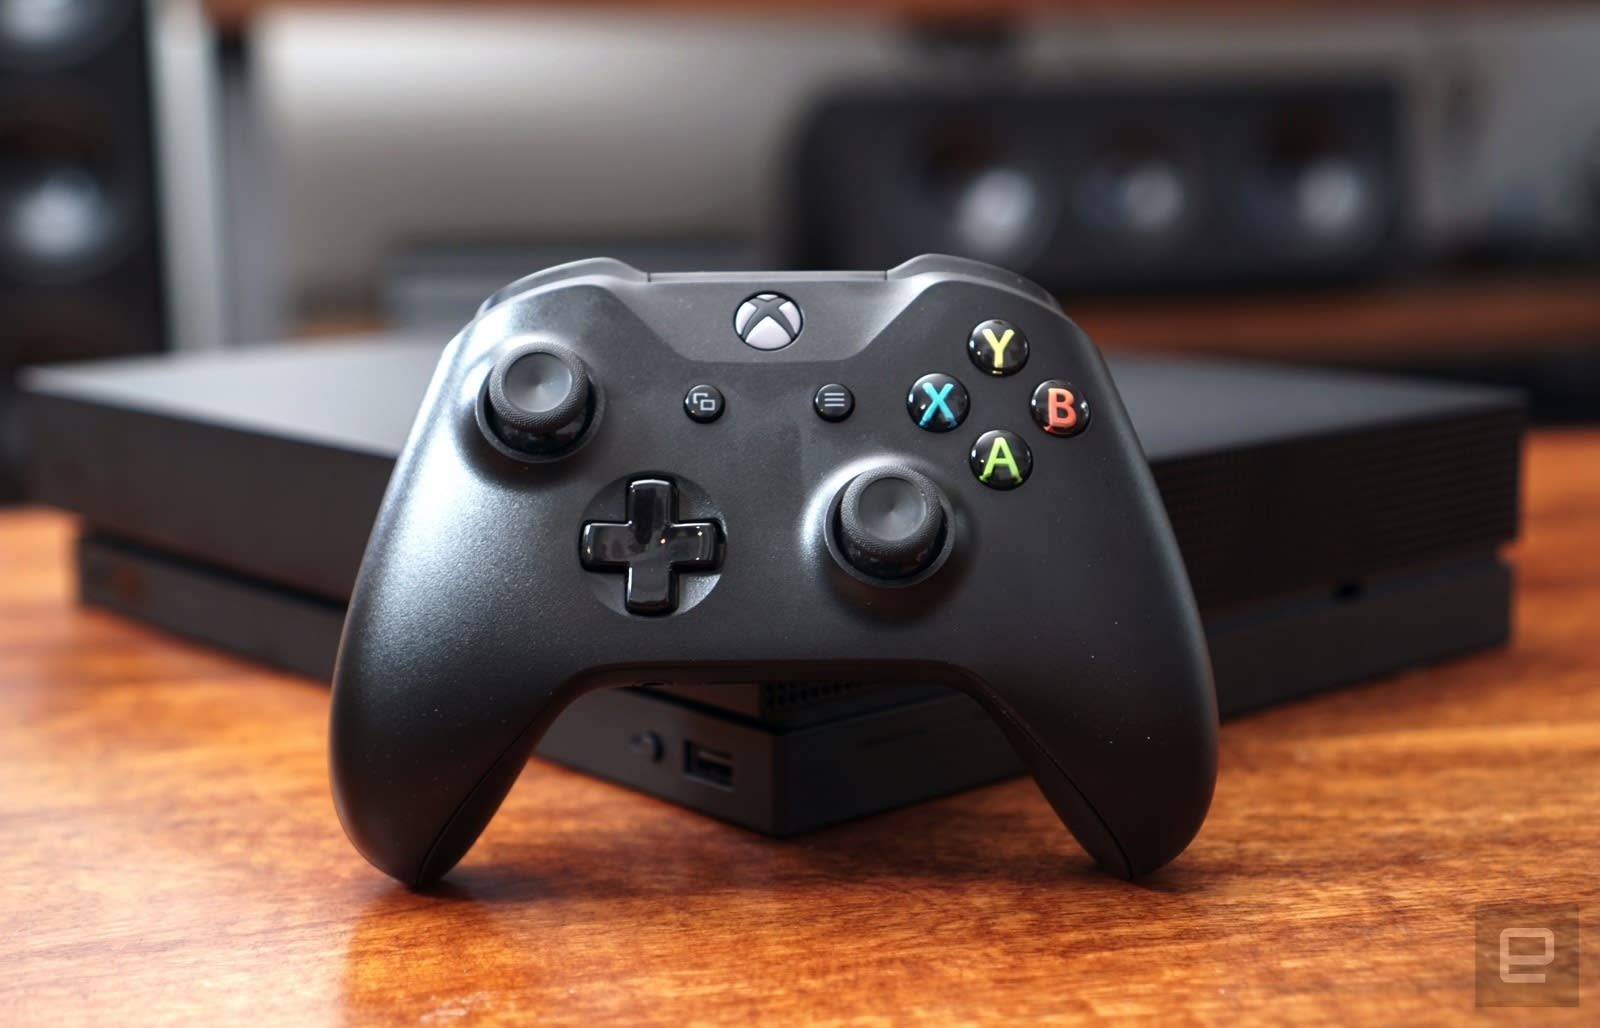 Xbox One 'black screen' issue prevented consoles from